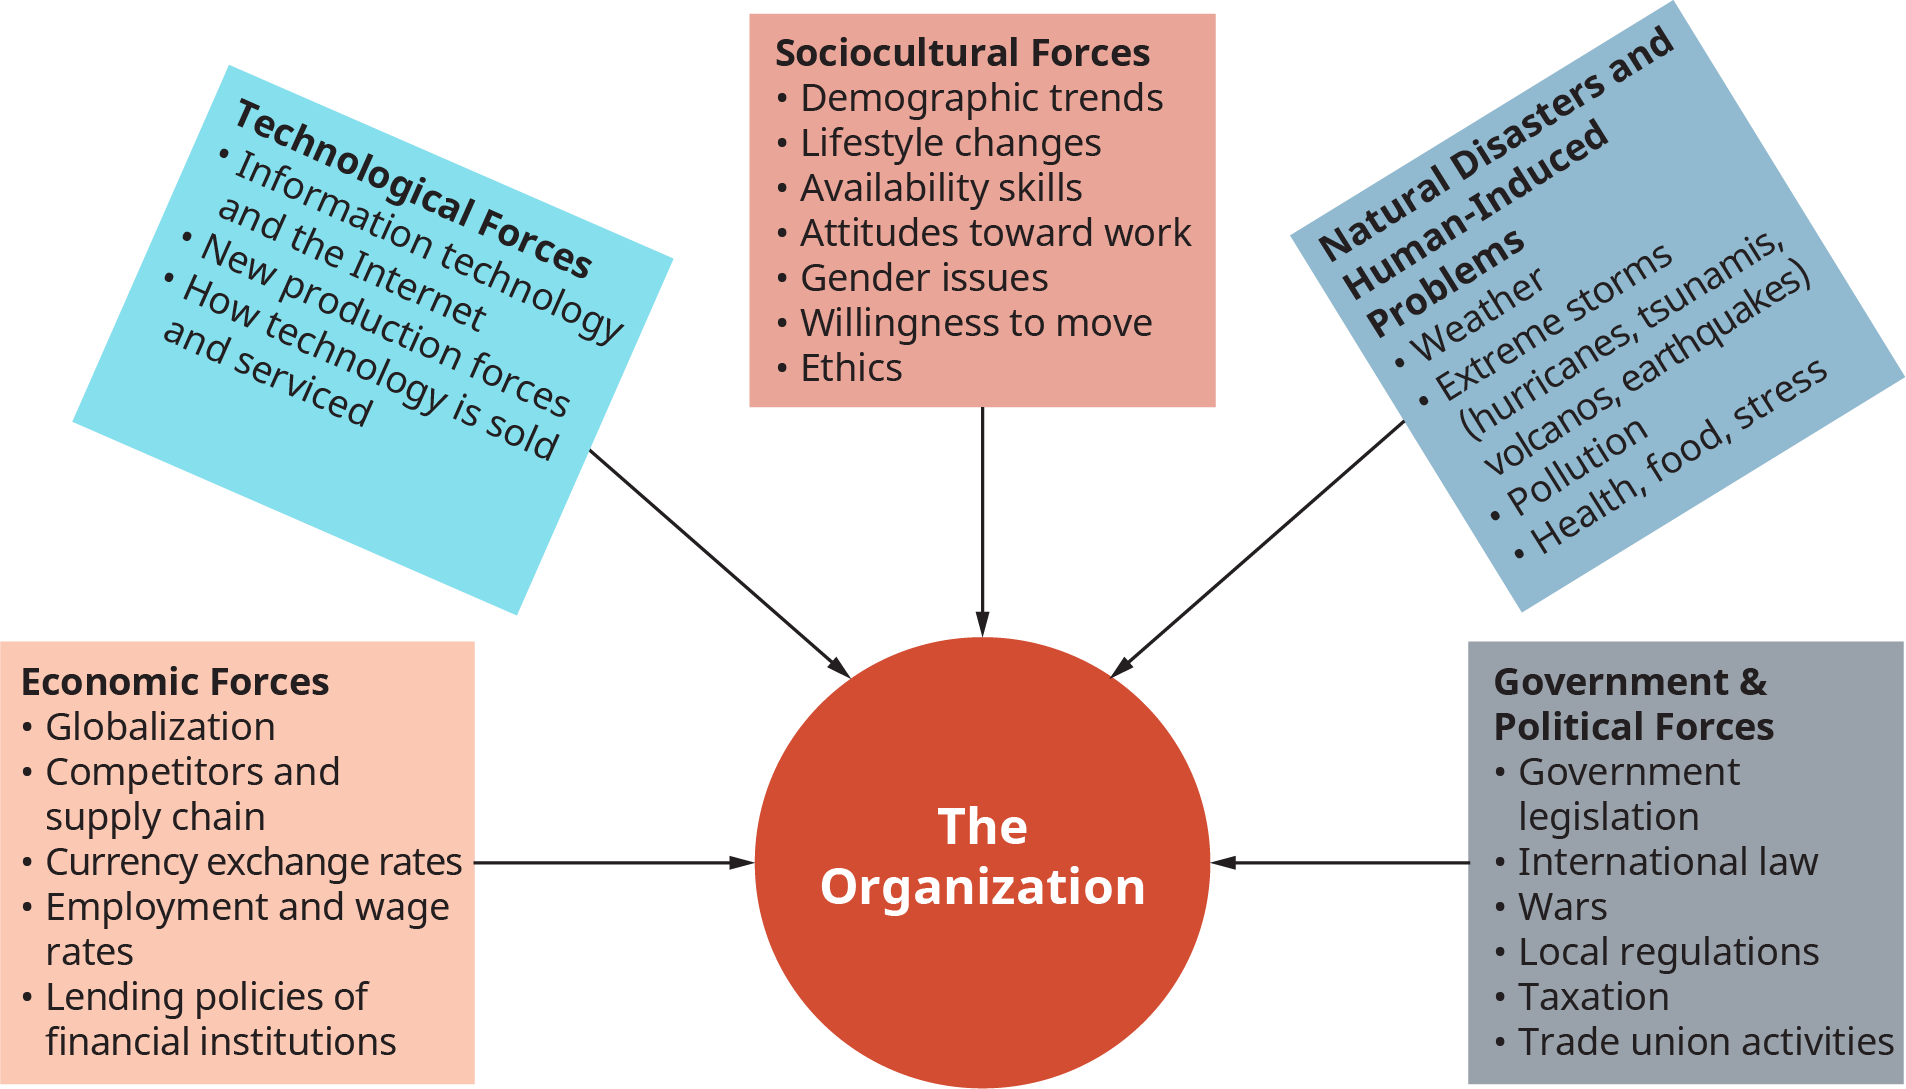 A diagram illustrates different types of macro environments and forces that affect organizations.